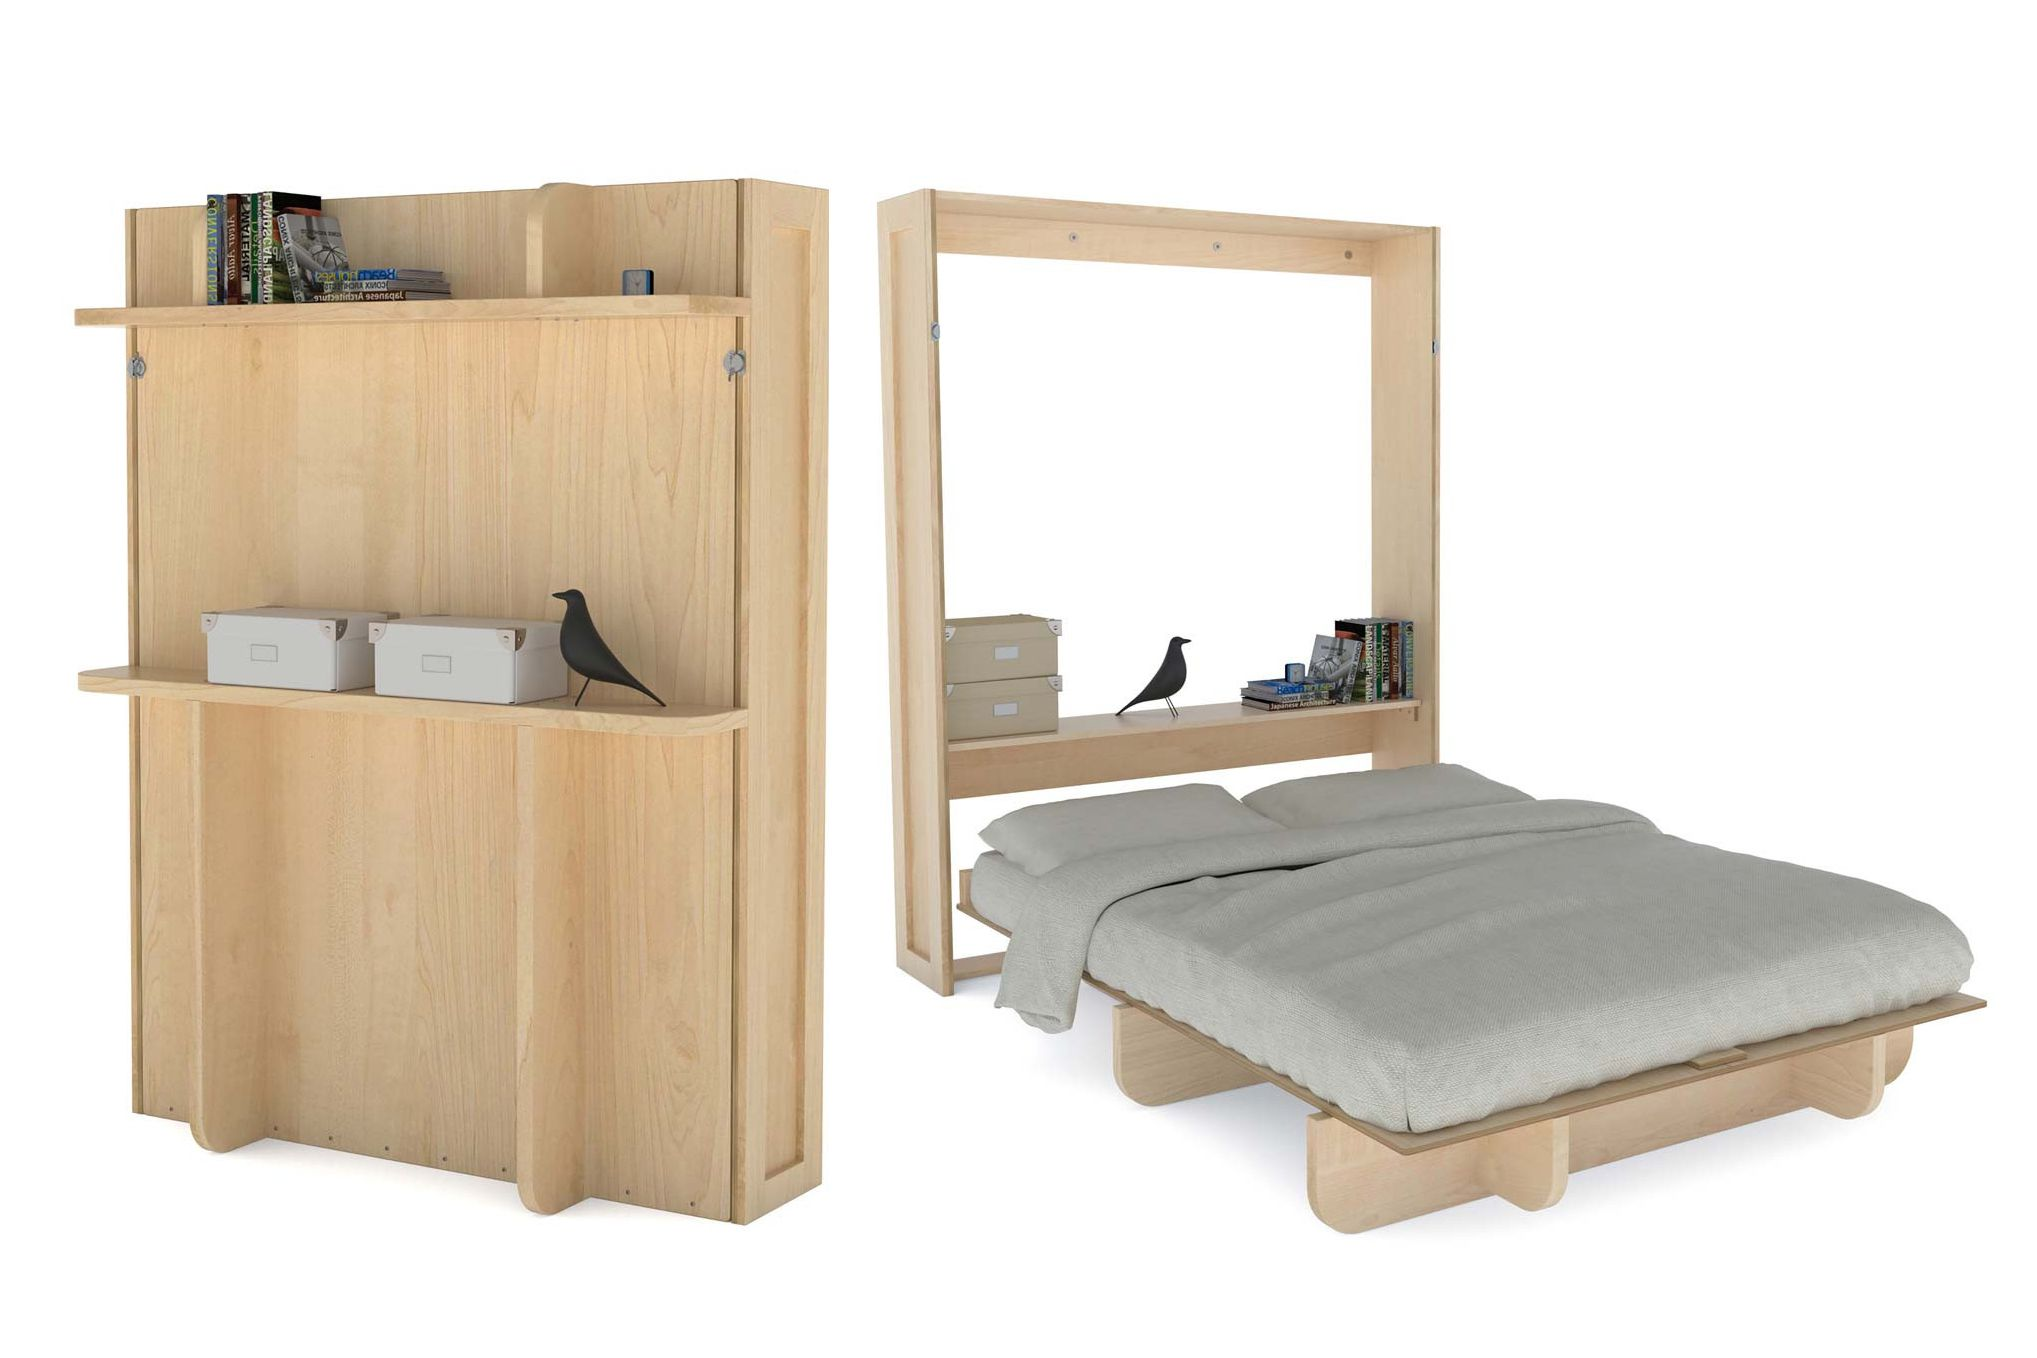 12 diy murphy bed projects for every budget amipublicfo Image collections